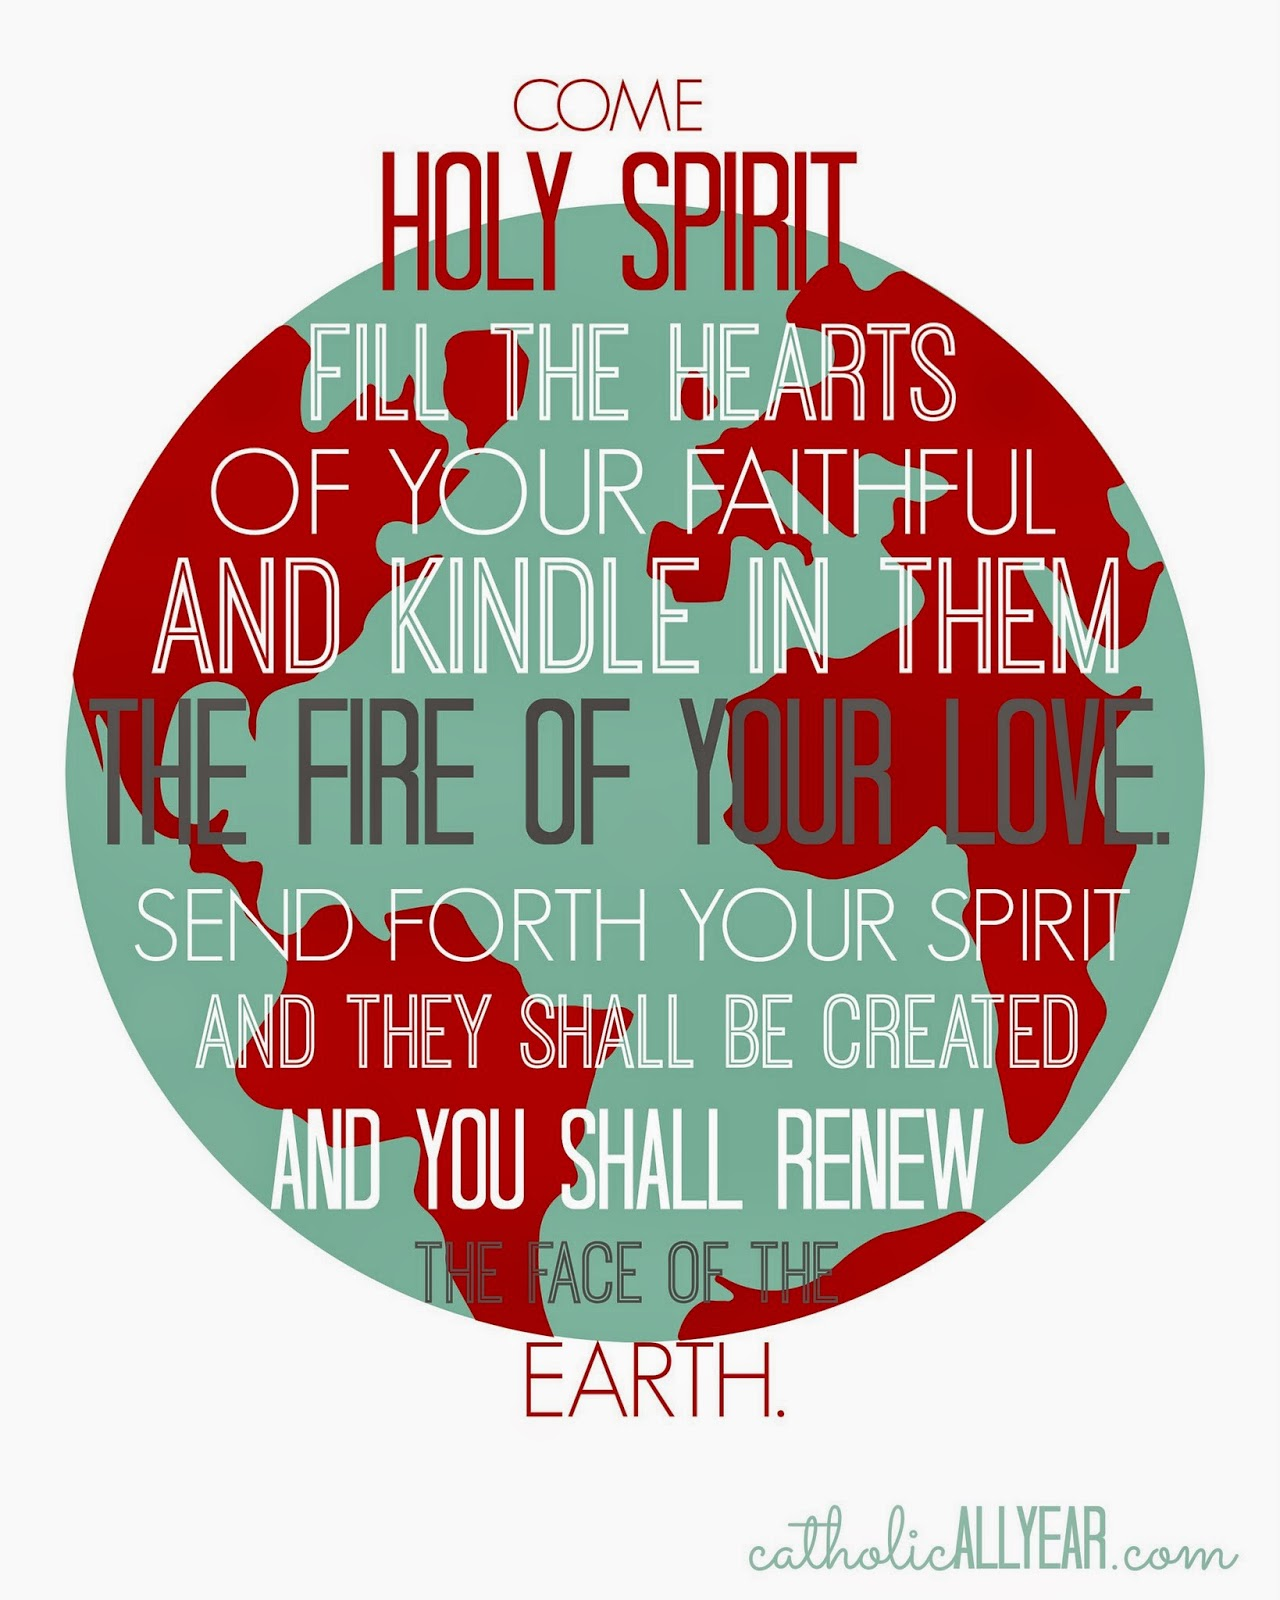 photo regarding Come Holy Spirit Prayer Printable named Pentecost is Coming: Social gathering Guidelines and Free of charge Printables